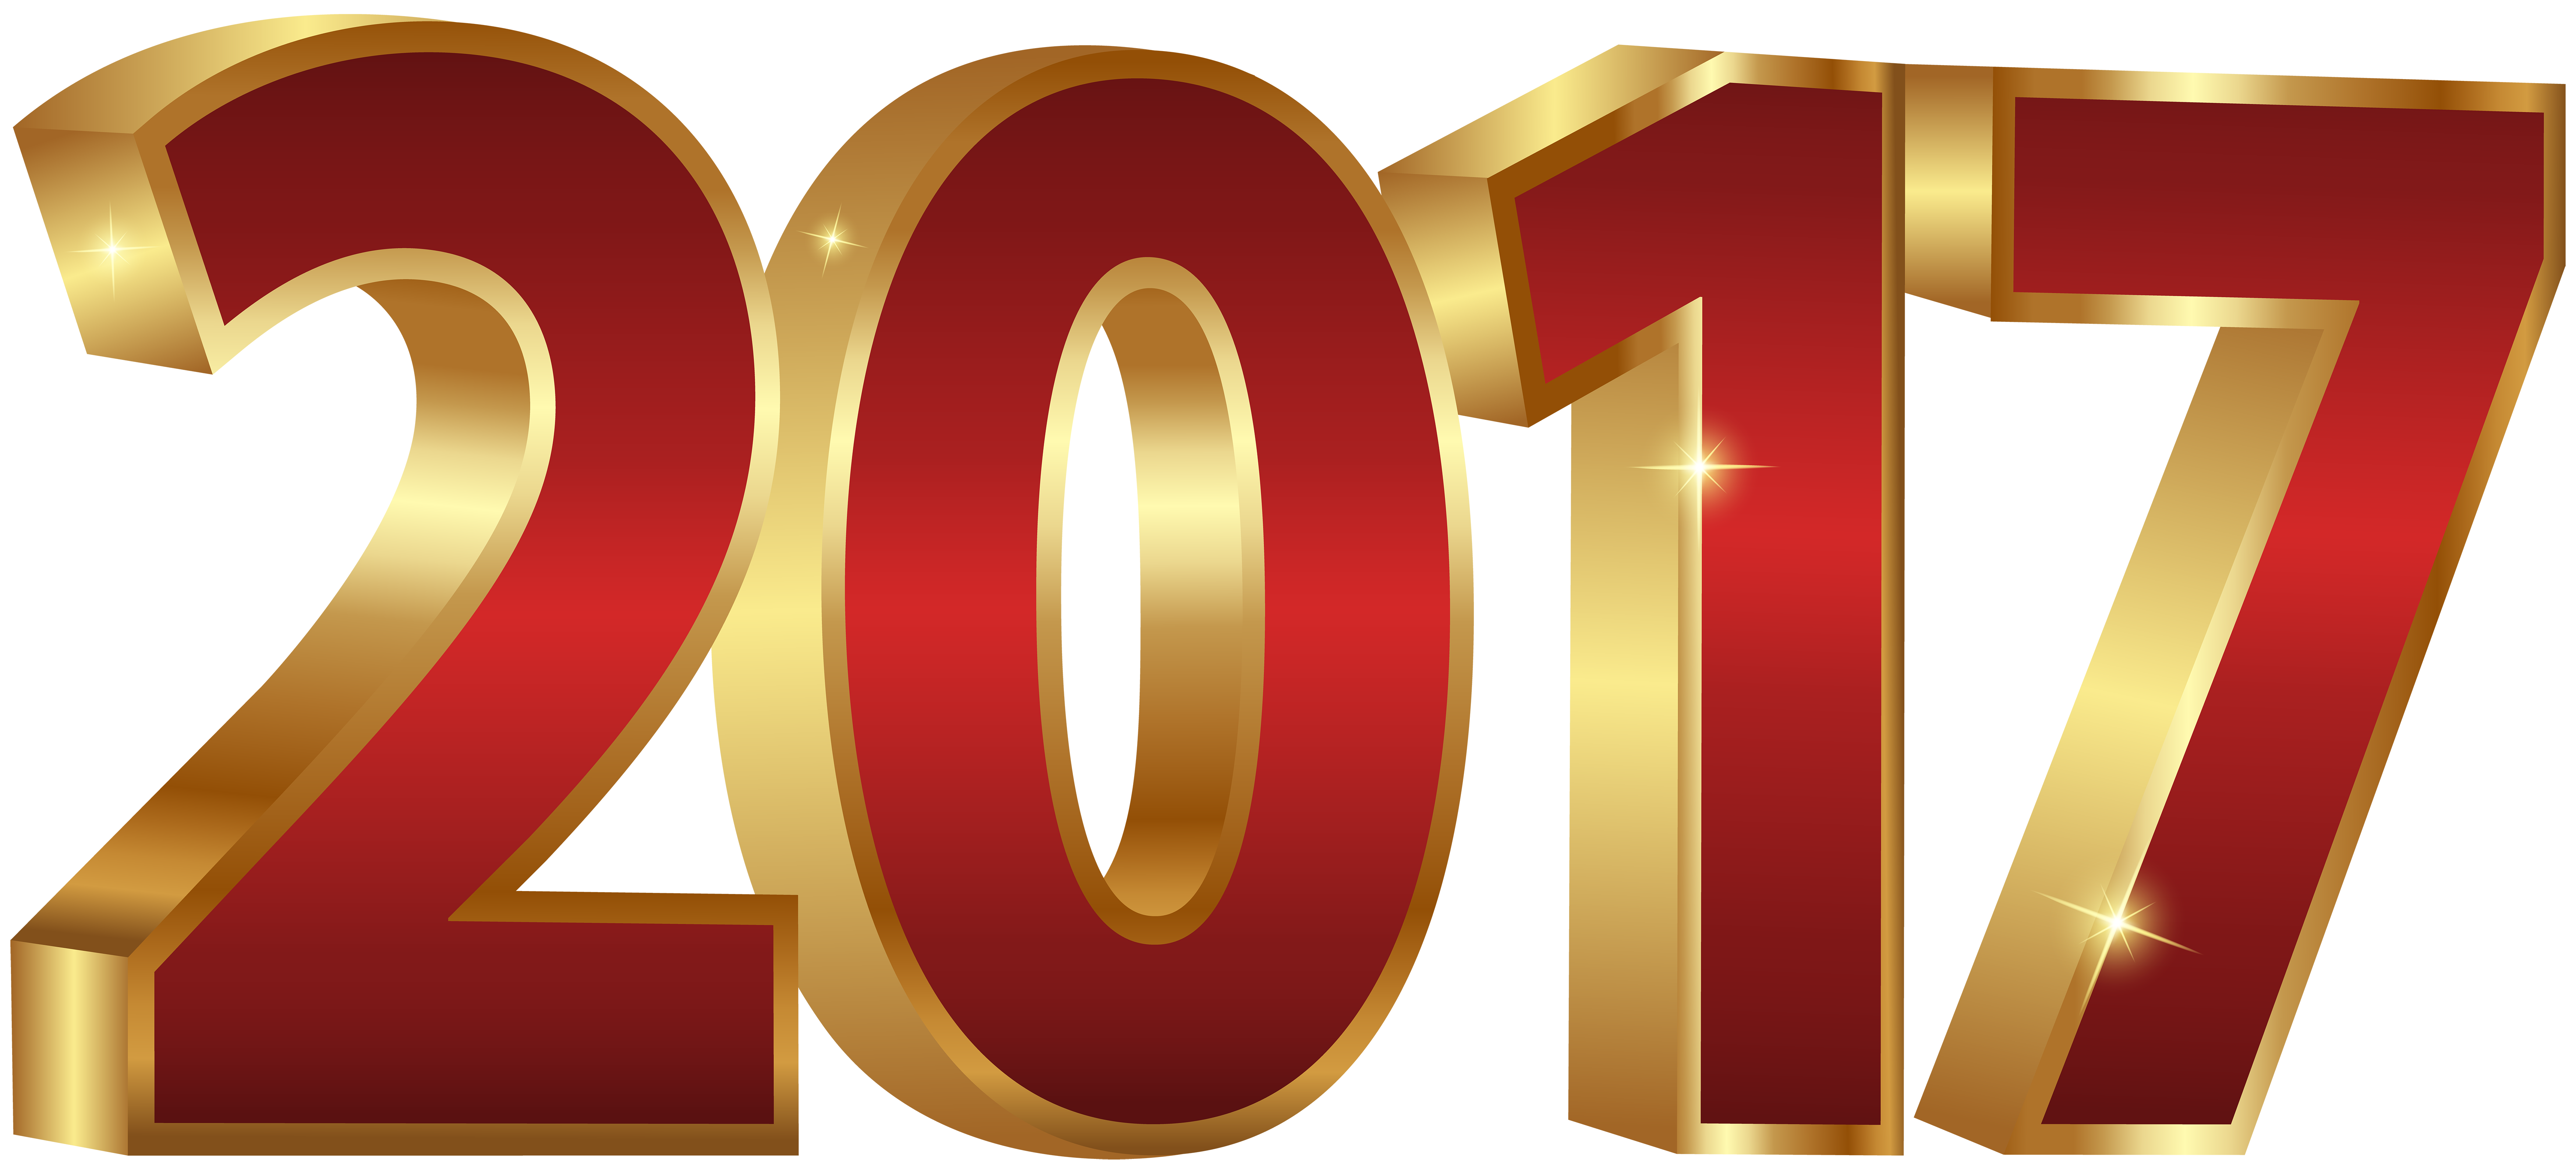 2017 clipart gold.  red and png